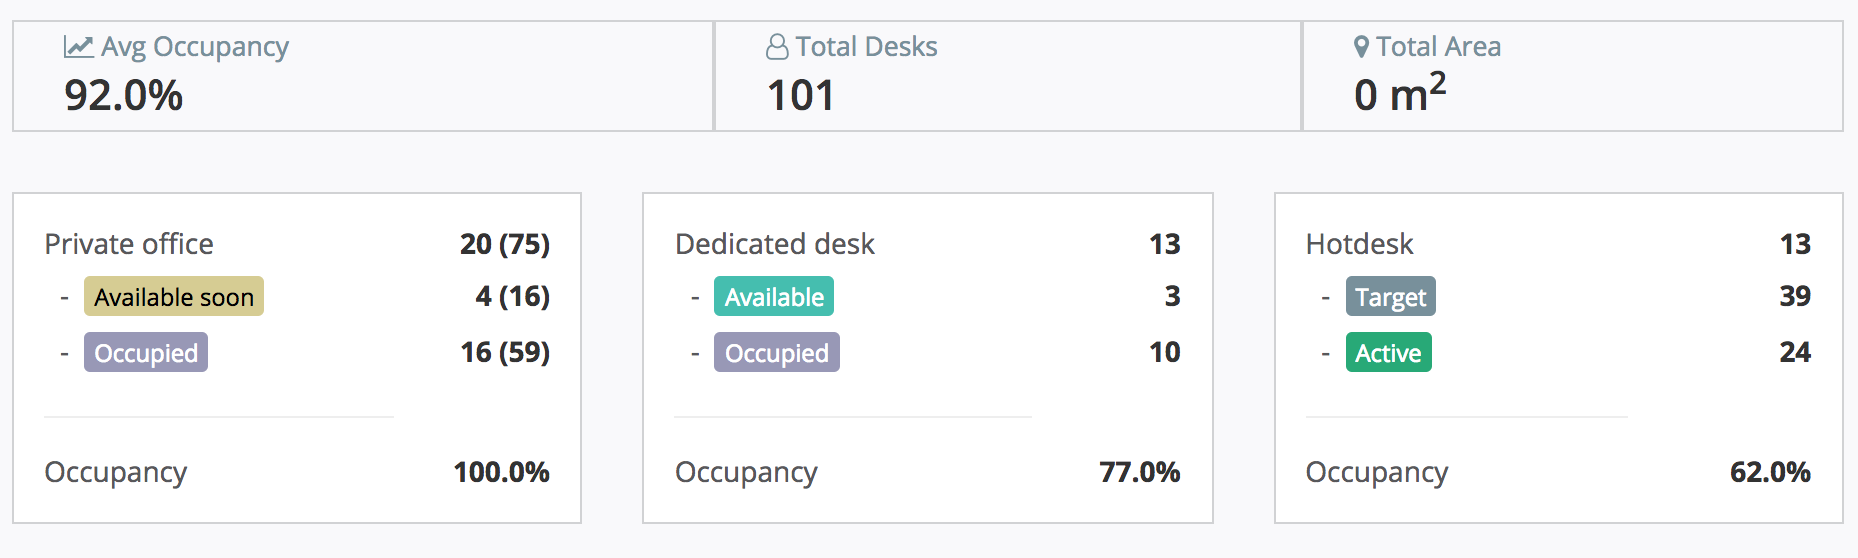 Current_Occupancy.png